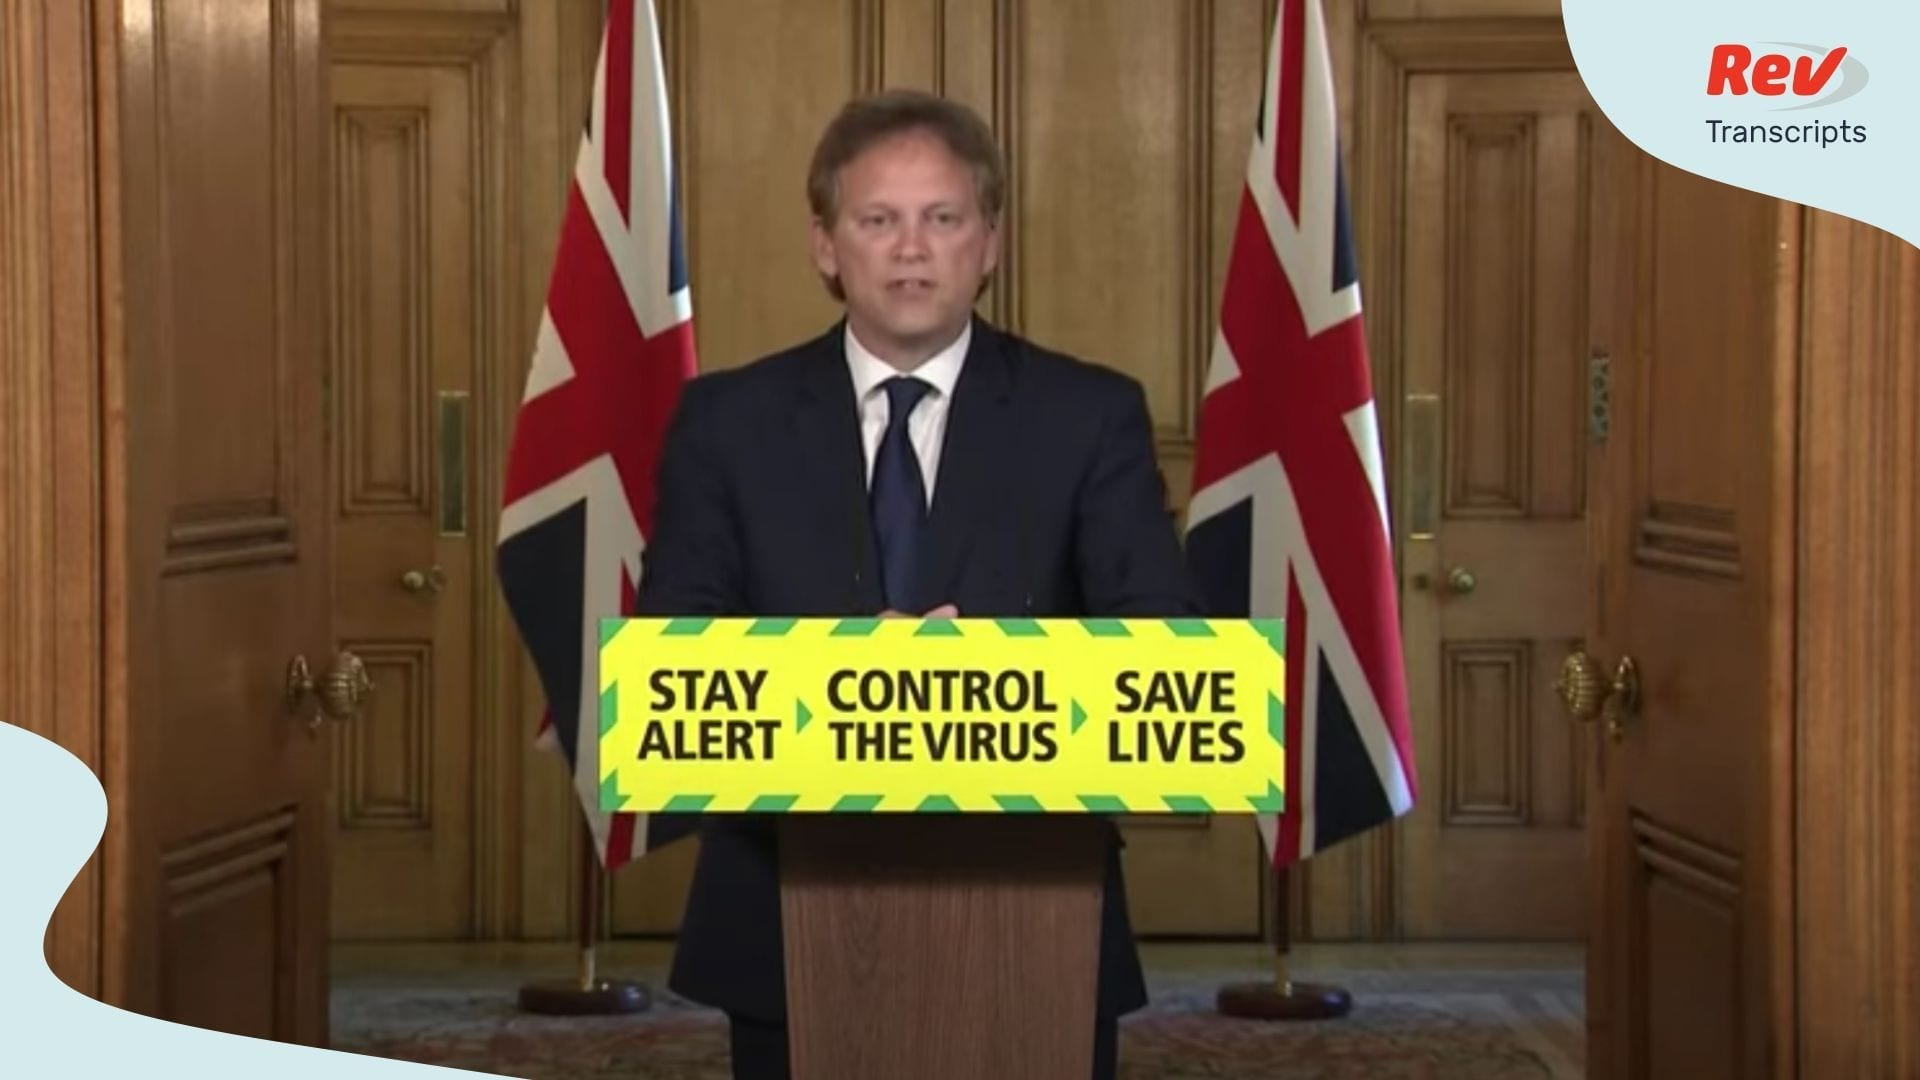 UK Coronavirus Briefing Transcript Grant Shapps May 14